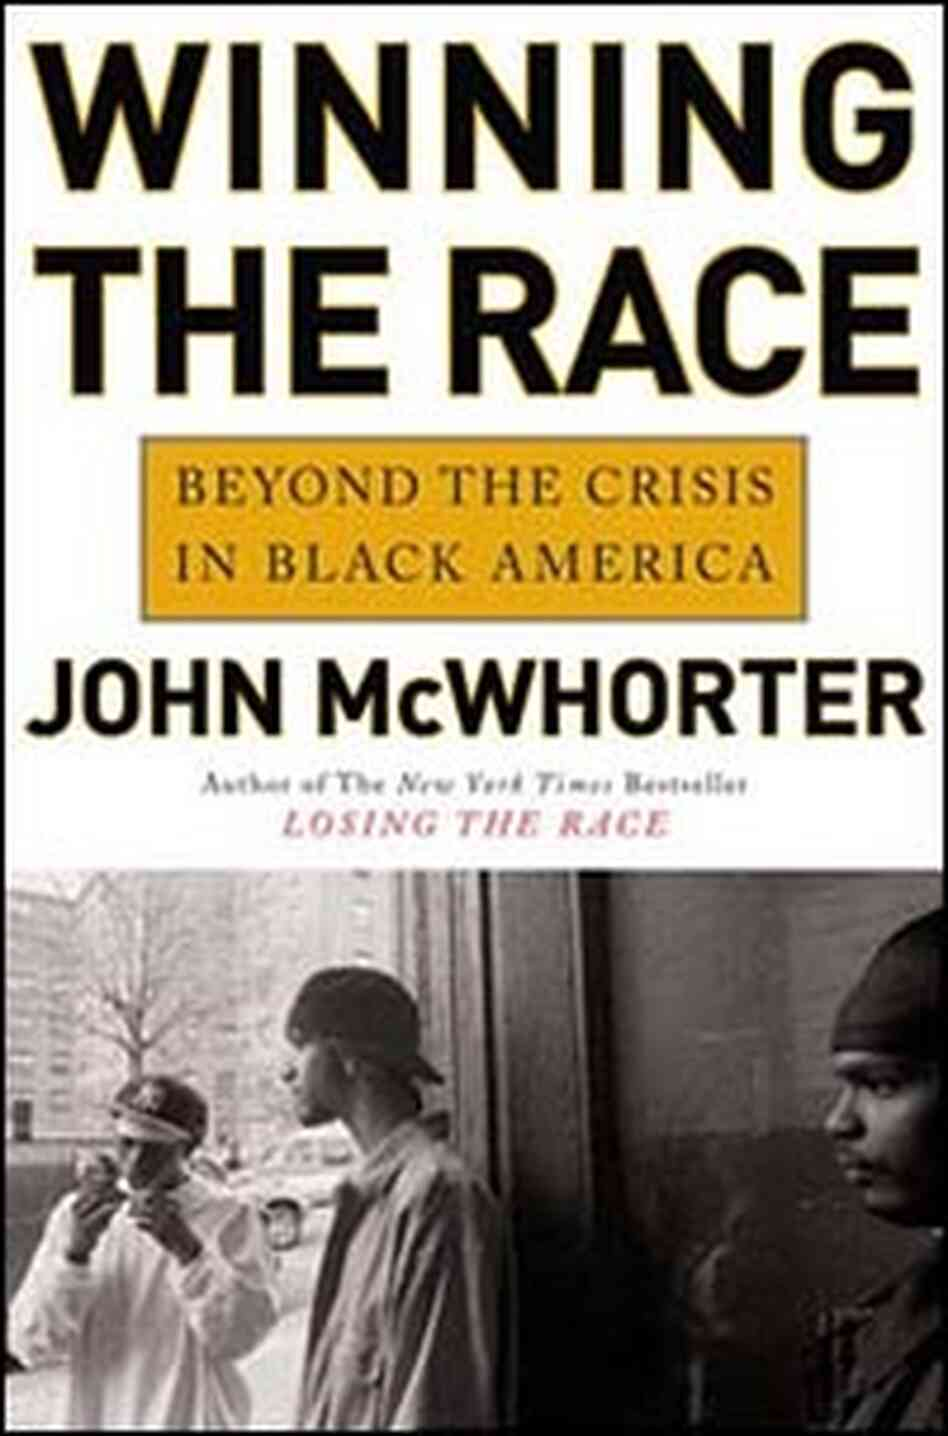 'Winning the Race' by John McWhorter